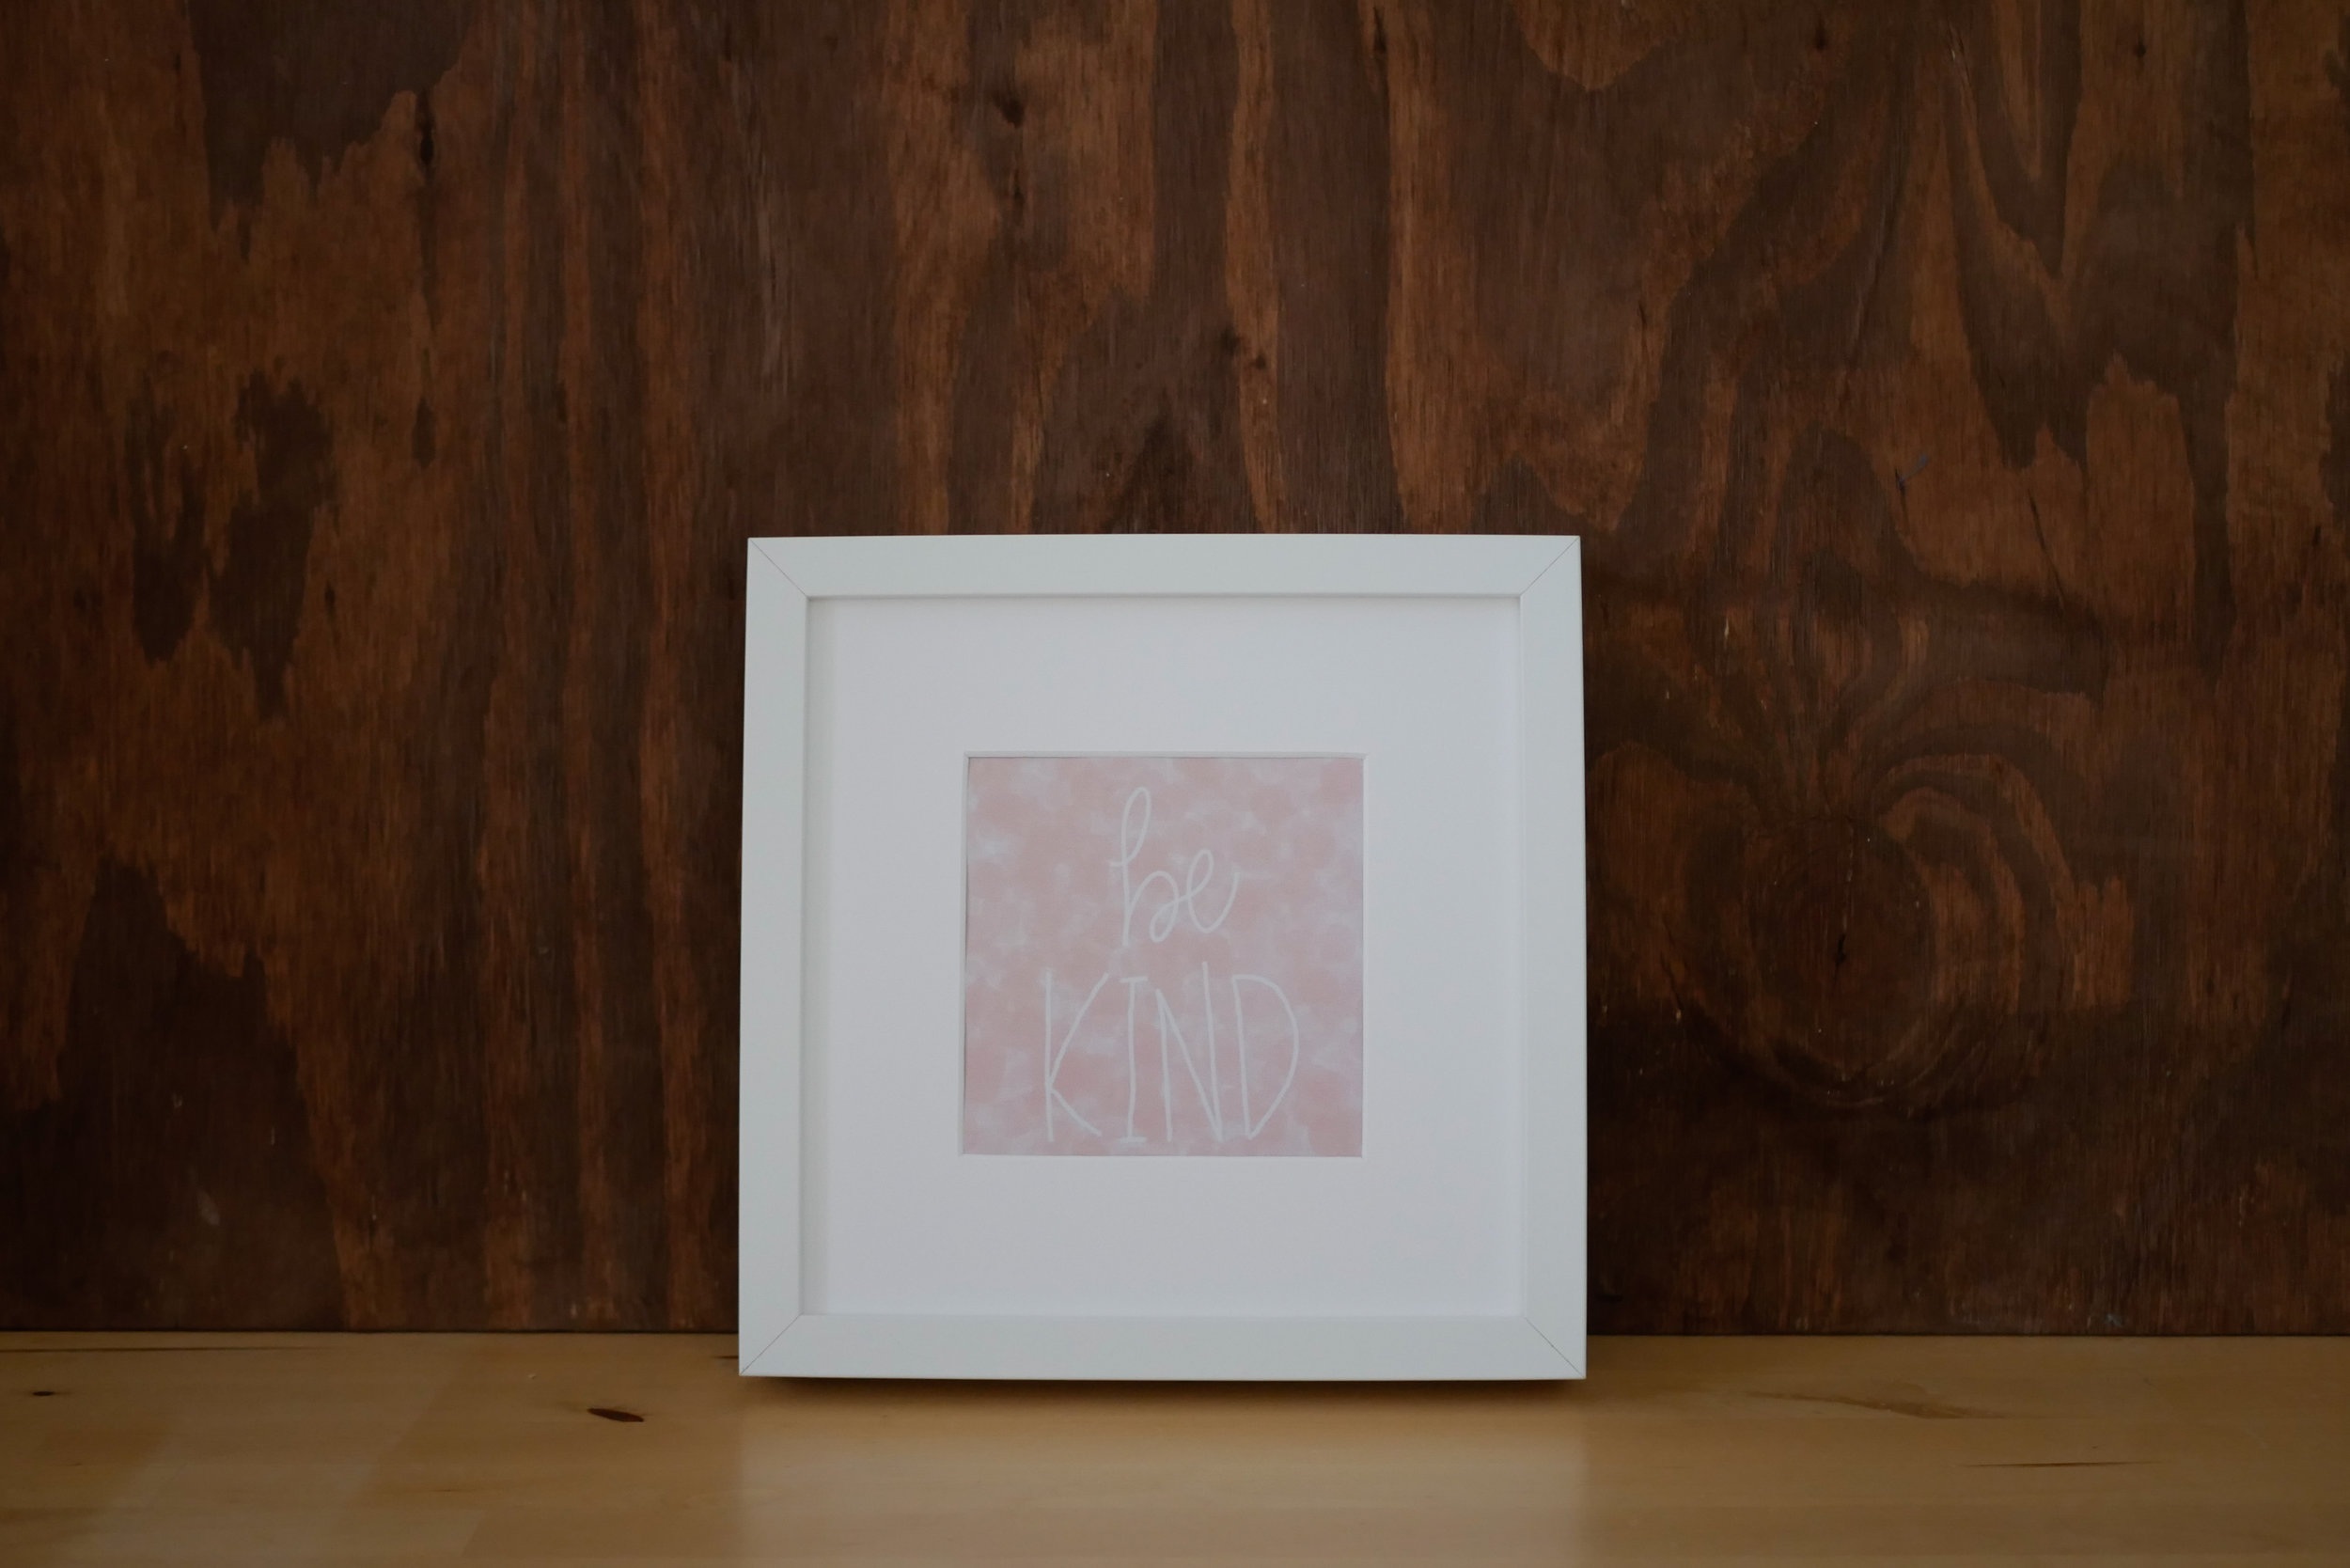 Kind 8x8 - Shop Joy42